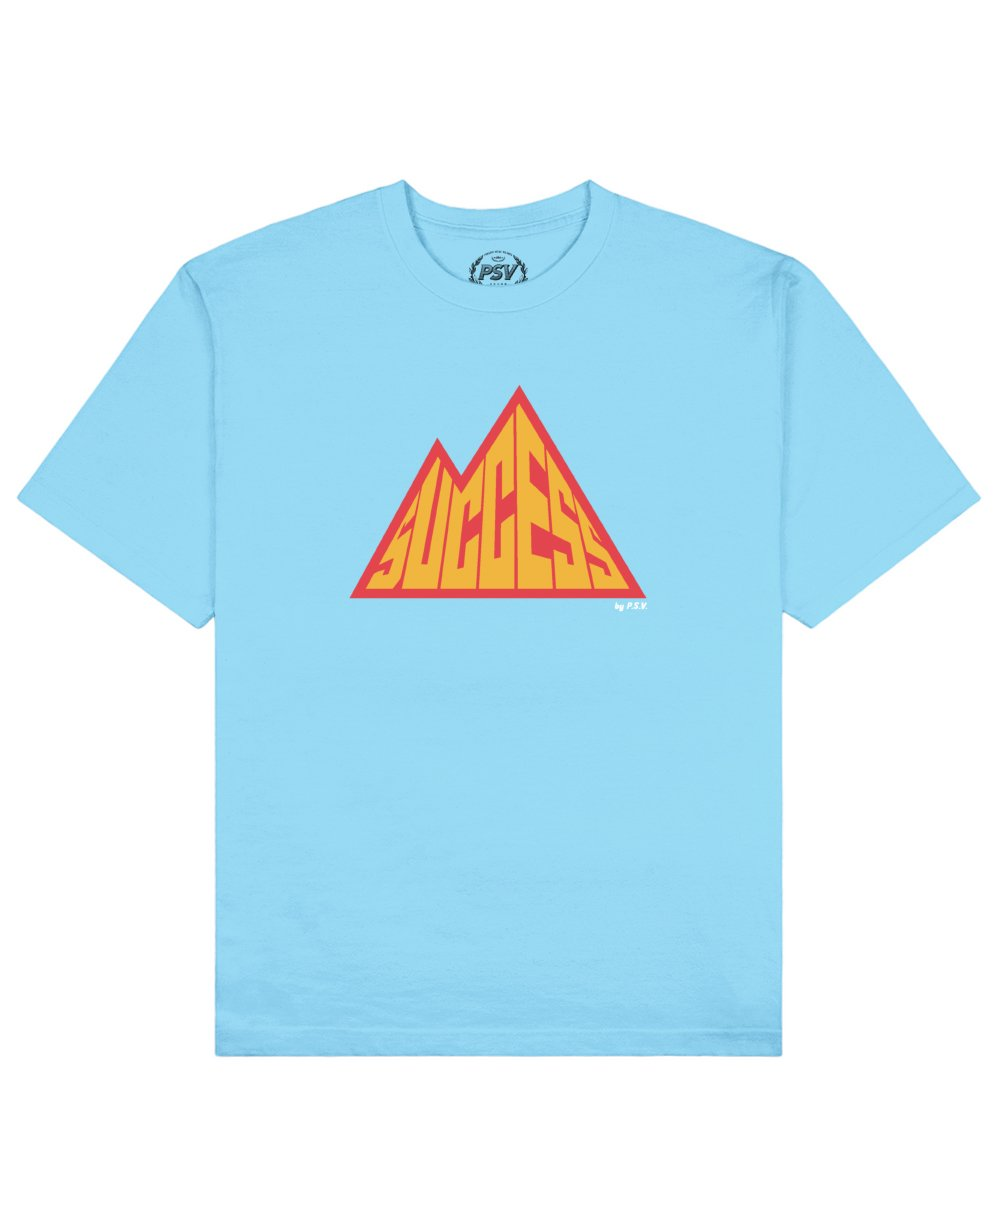 Success is a Mountain Print T-Shirt in Light Blue - T-Shirts - PSV - BRANMA